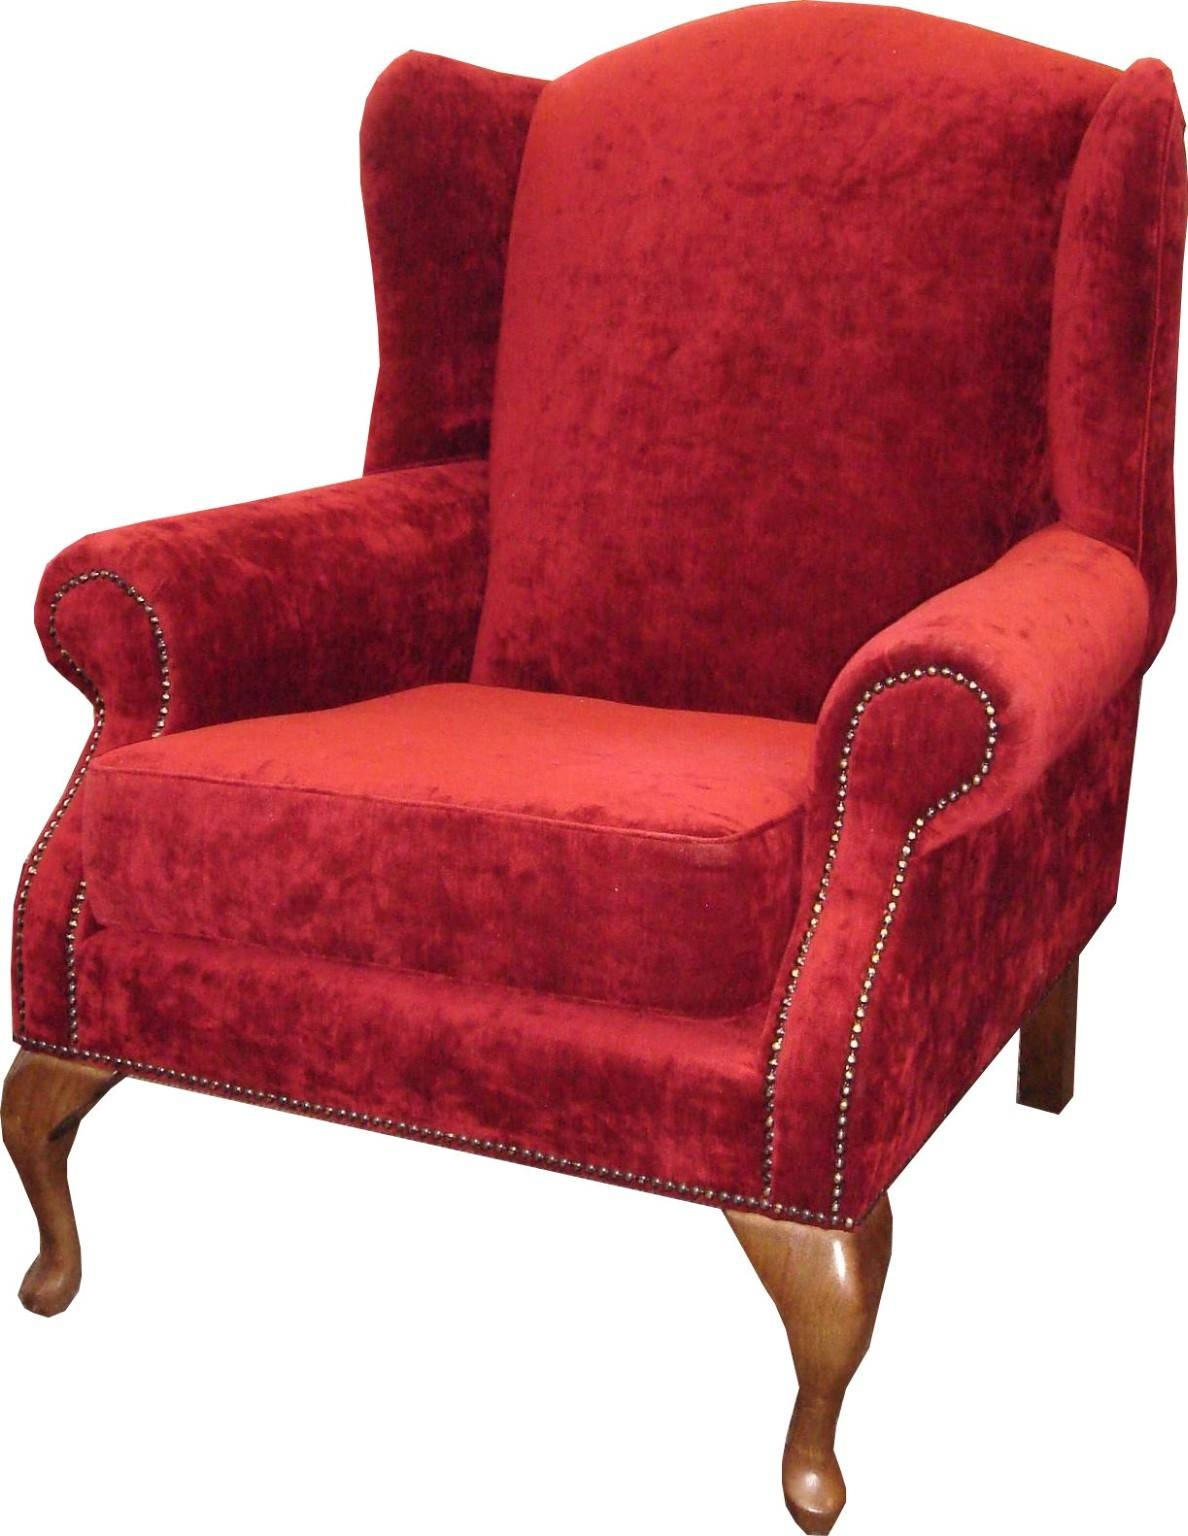 Furniture Home: Sofa And Chair Cushions Supports Covers At Bath inside Red Sofas and Chairs (Image 7 of 30)